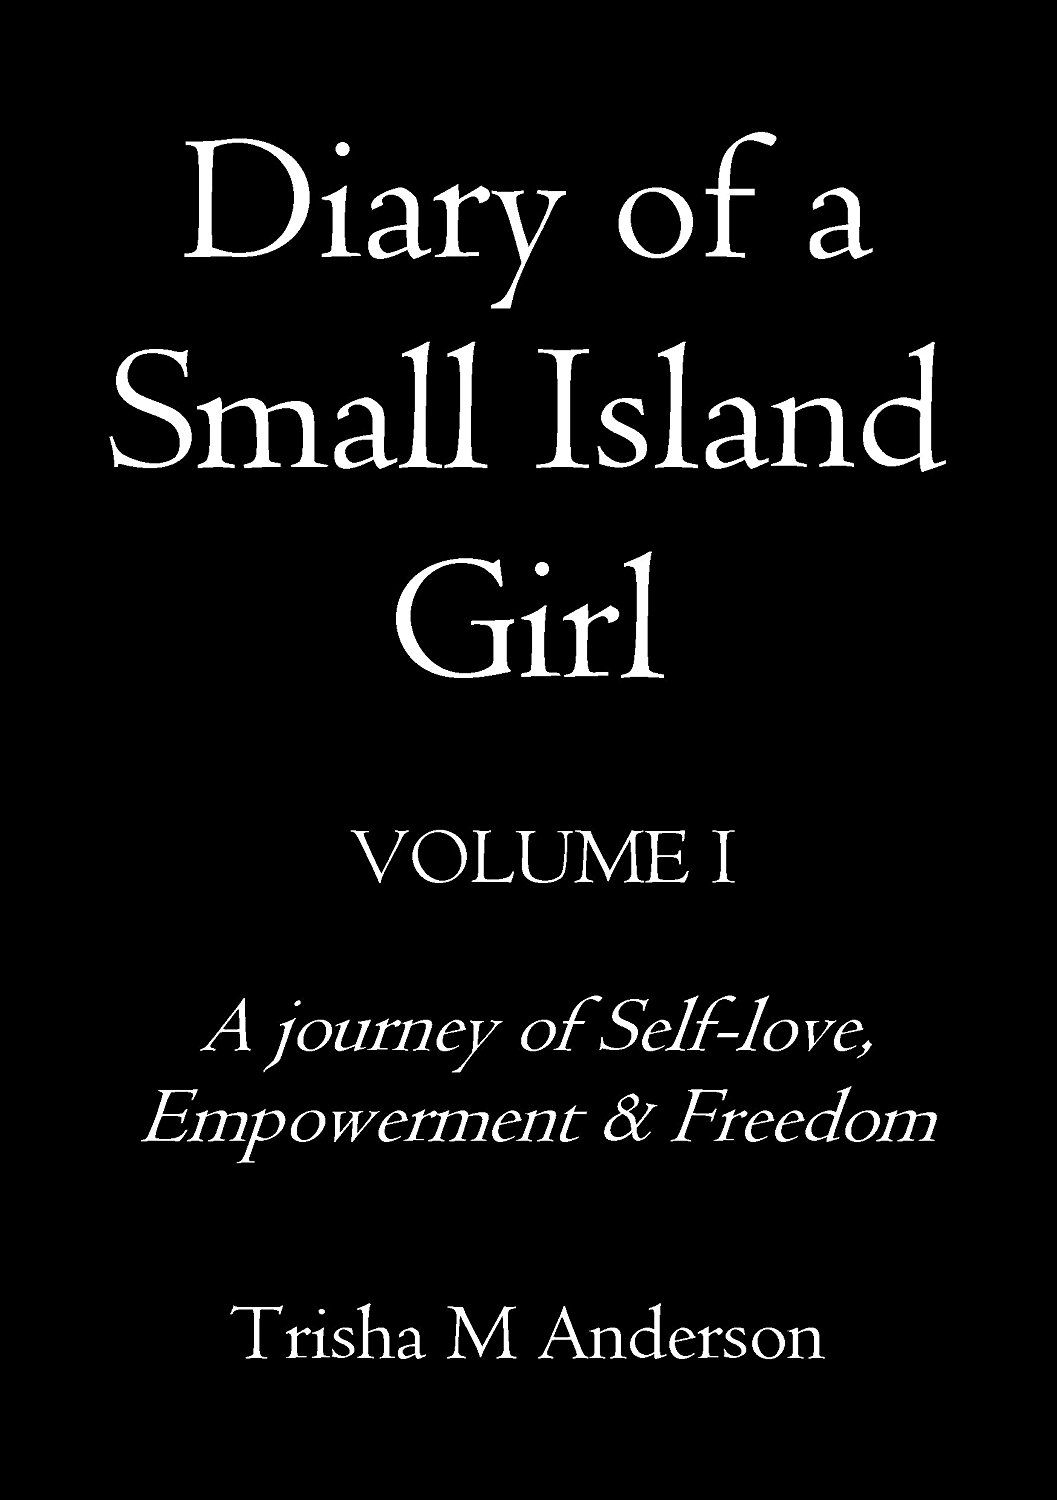 Diary Of A Small Island Girl, Volume 1 | Inspirational ...